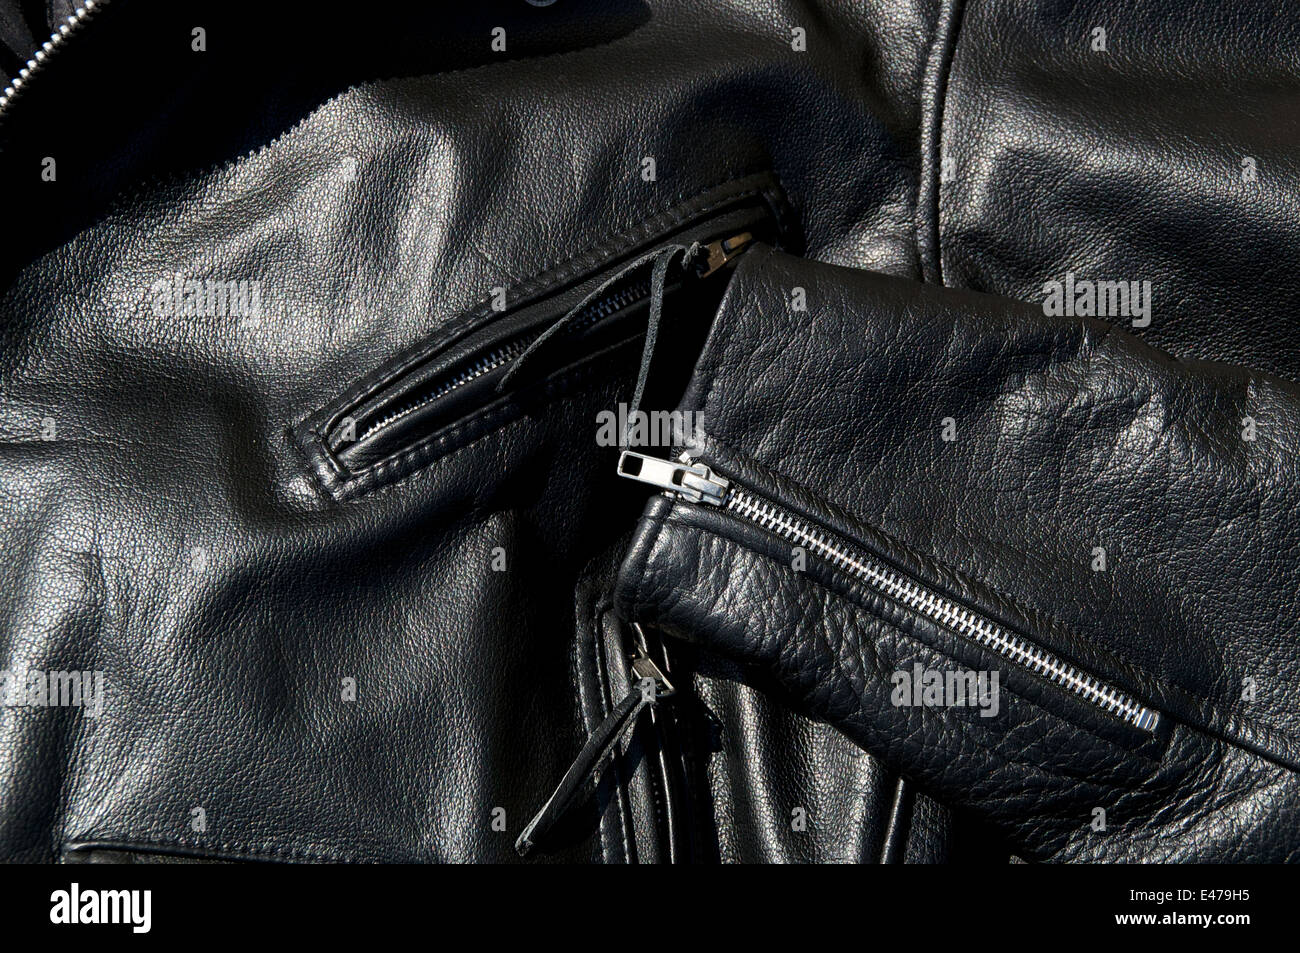 High contrast close up of black leather motorcycle jacket showing zippered pockets and portion of sleeve in sunshine. - Stock Image